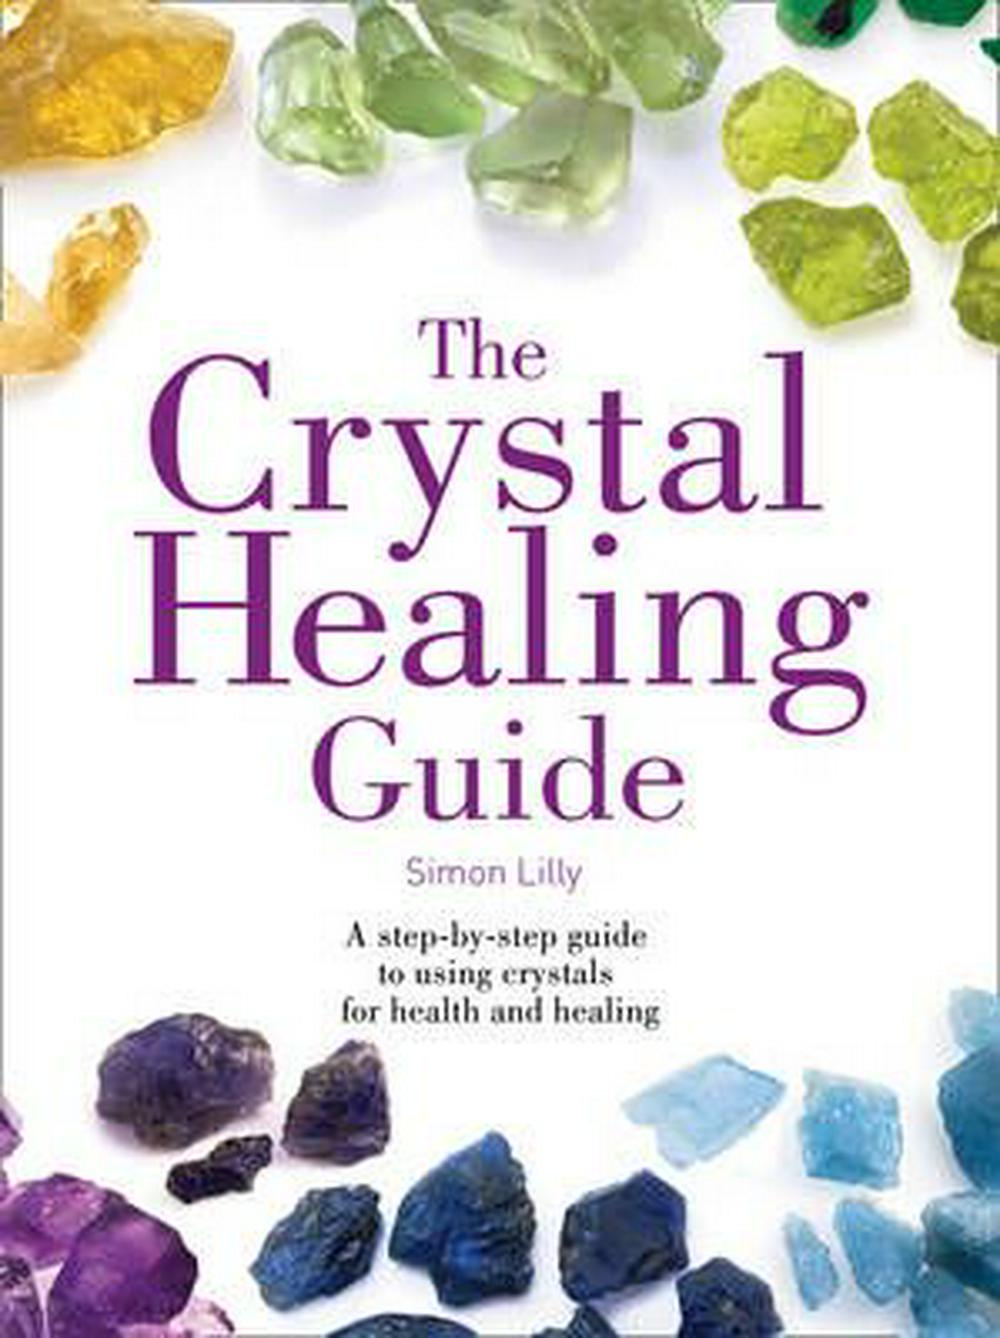 The Crystal Healing Guide- A Step-By-step Guide to Using Crystals for Health and Healing